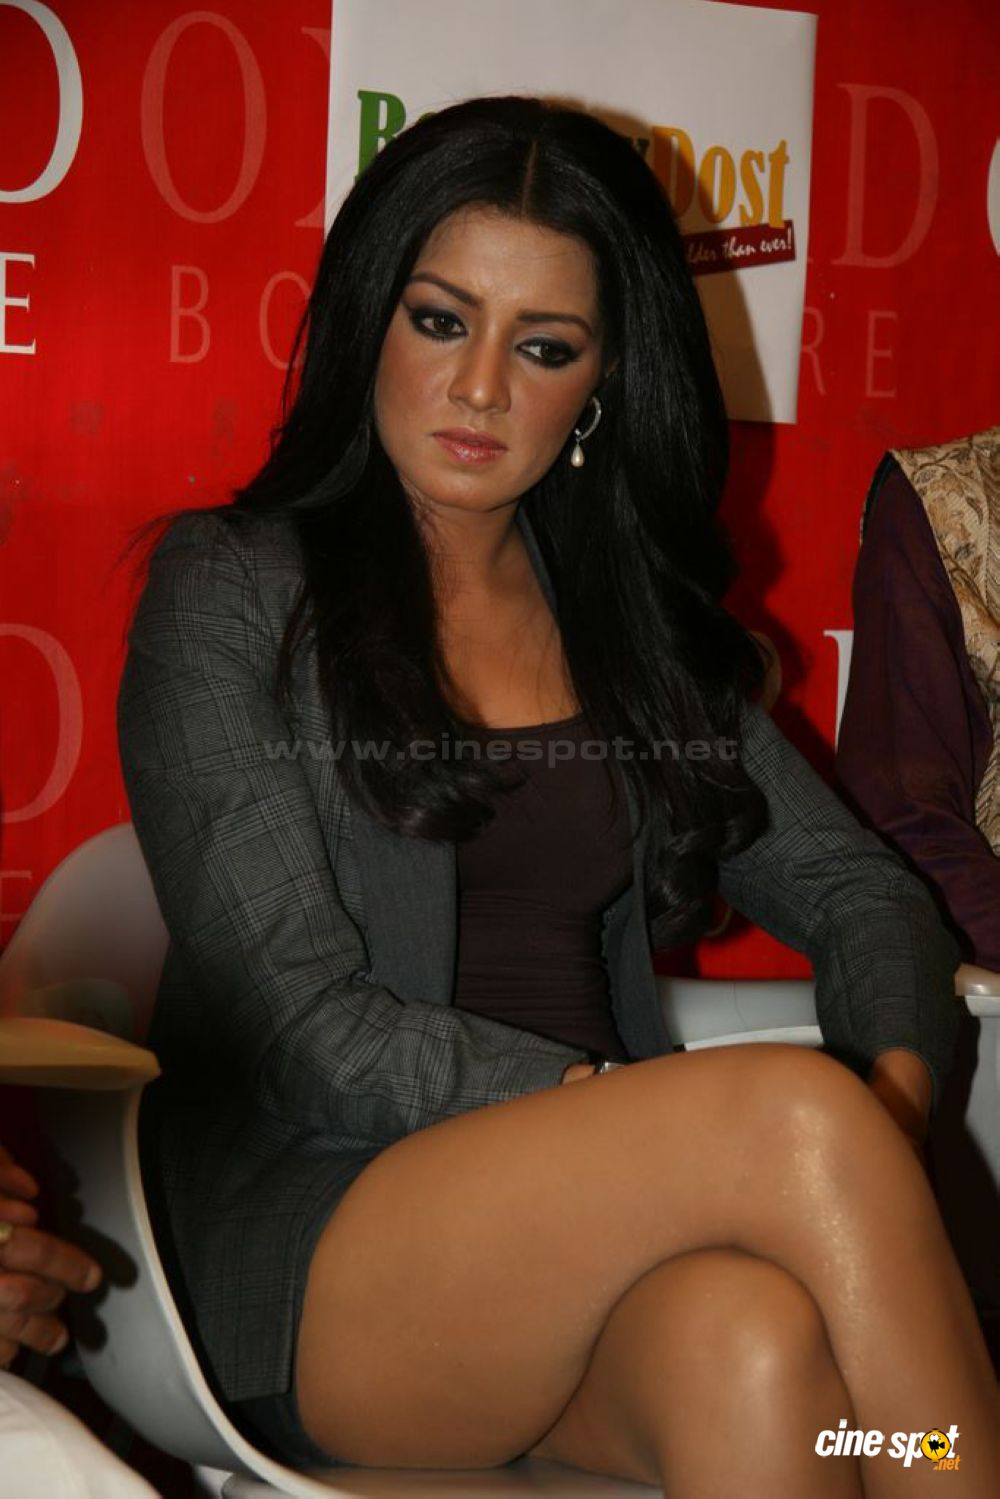 celina jaitley thigh show at bombay dost launch photos 8